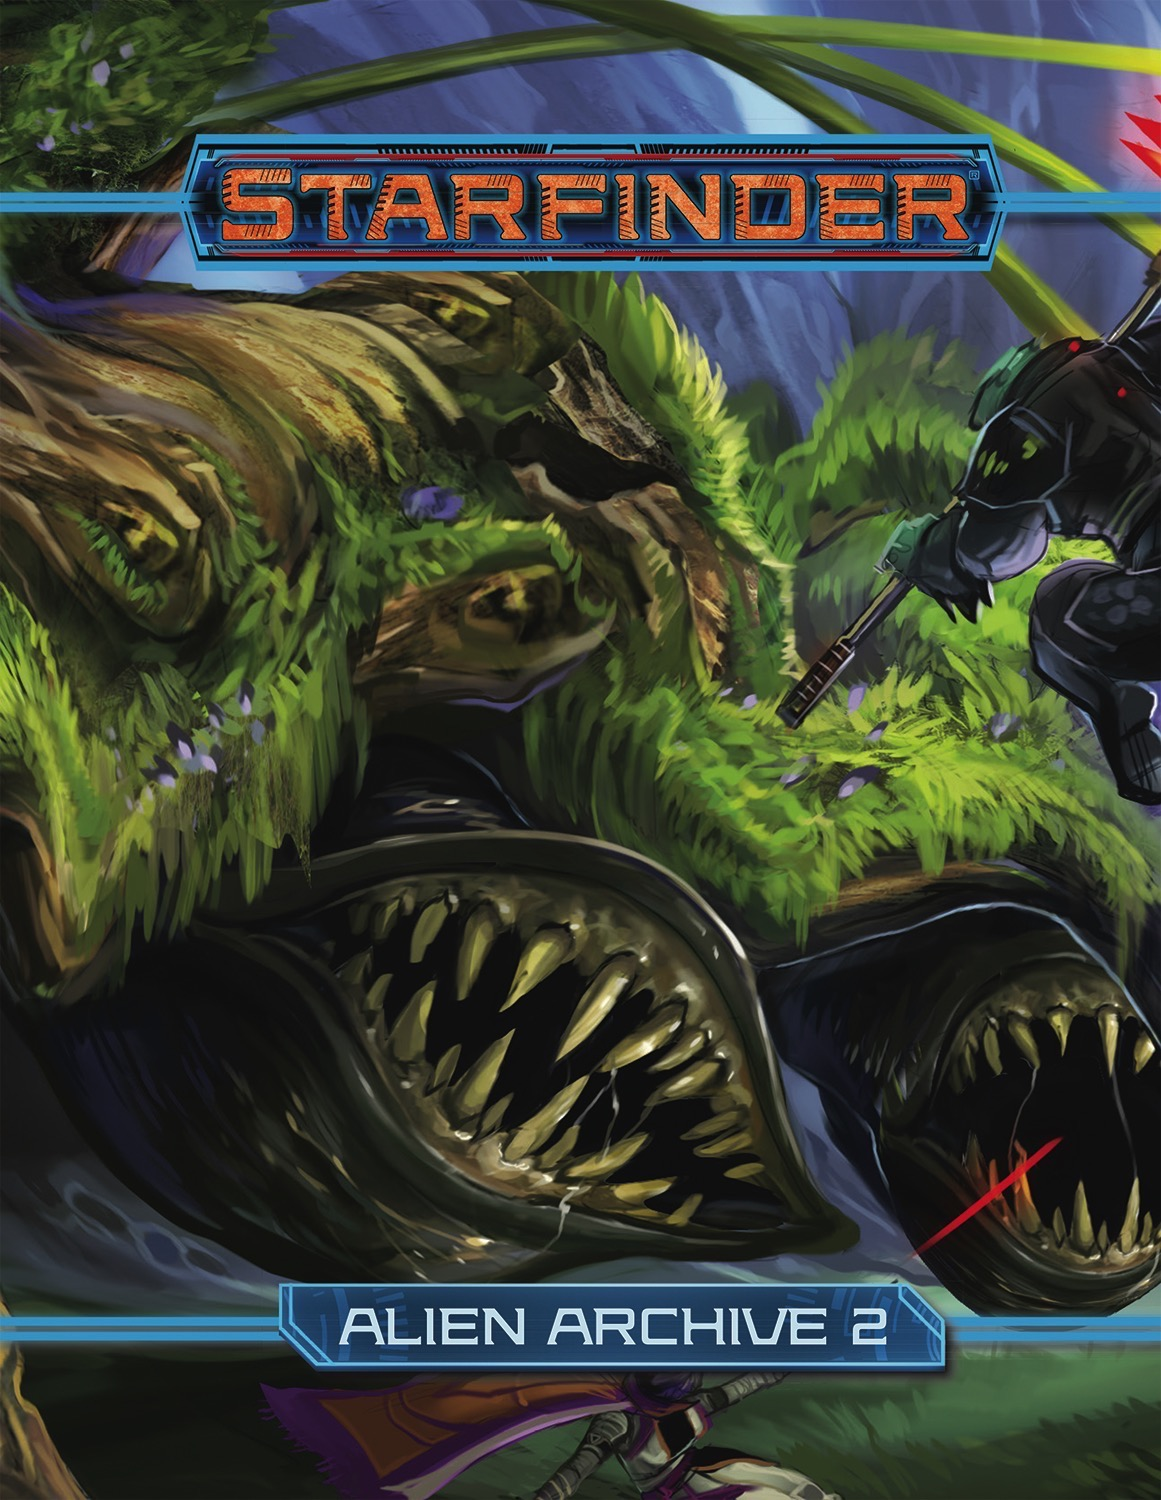 Starfinder Rpg: Alien Archive 2 Hardcover Box Front